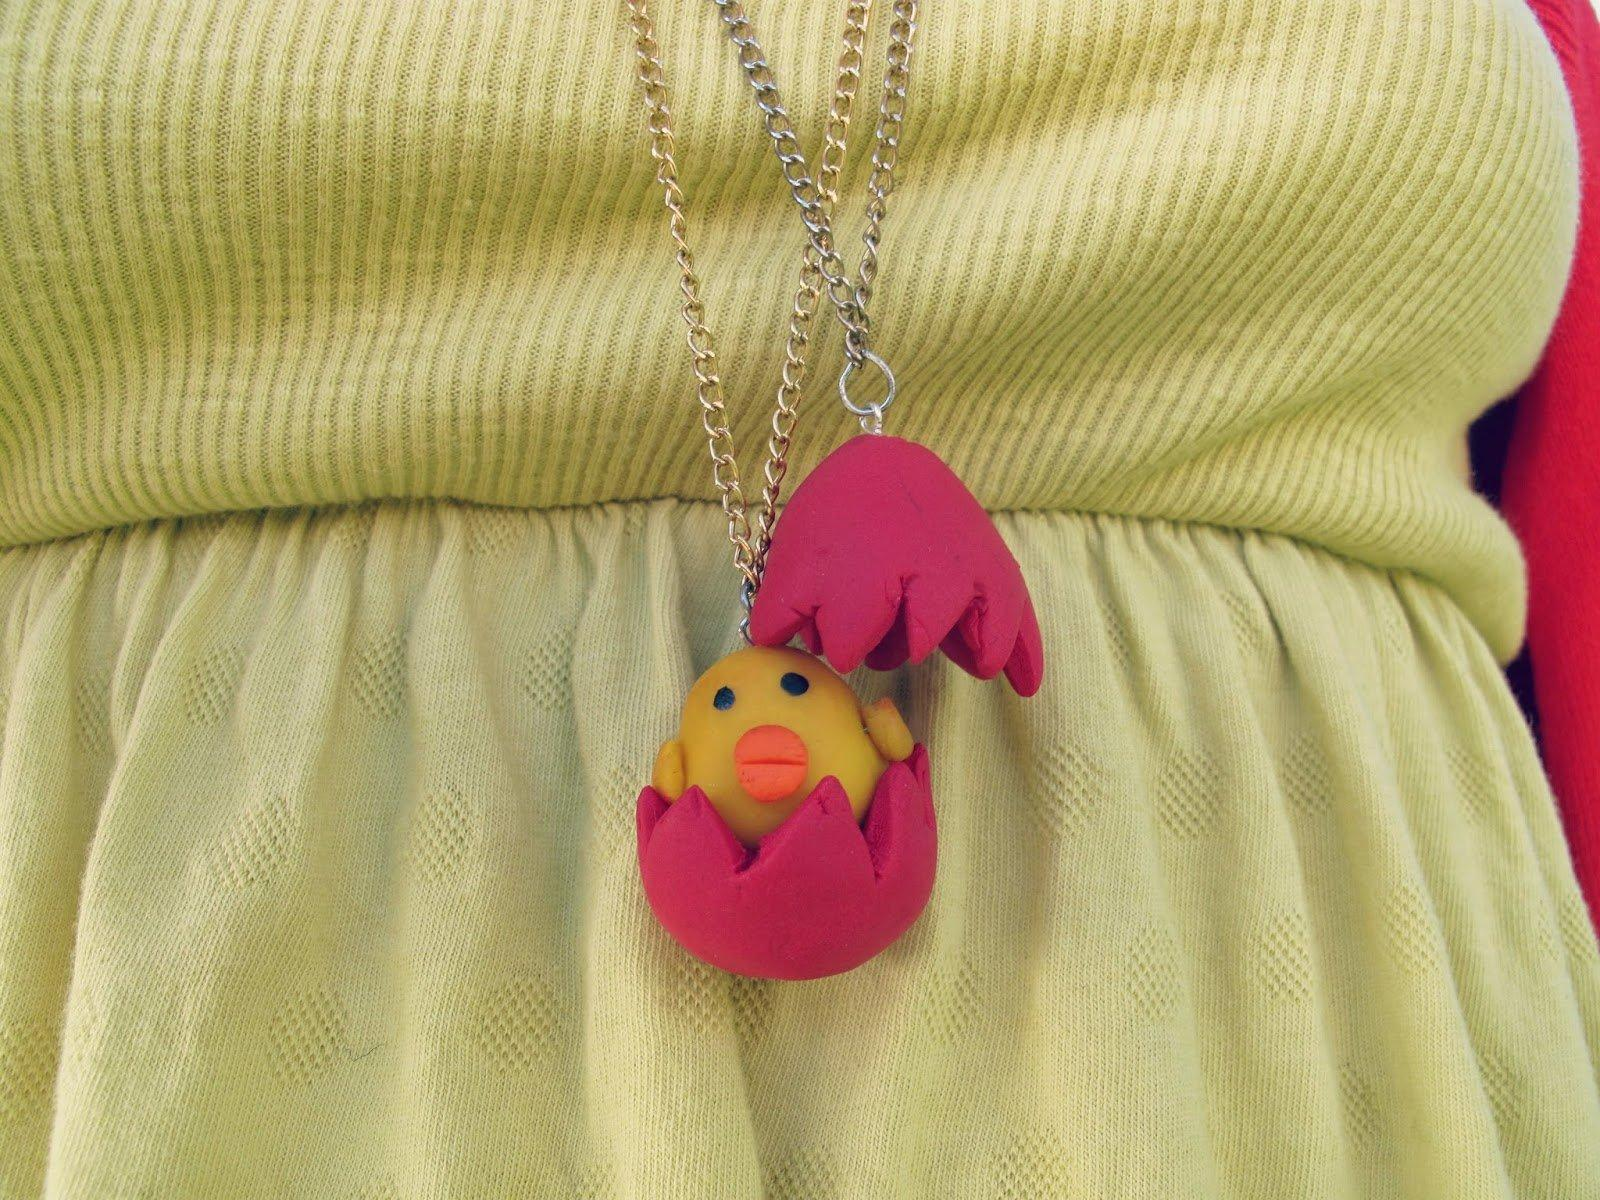 Easter chick in egg necklace